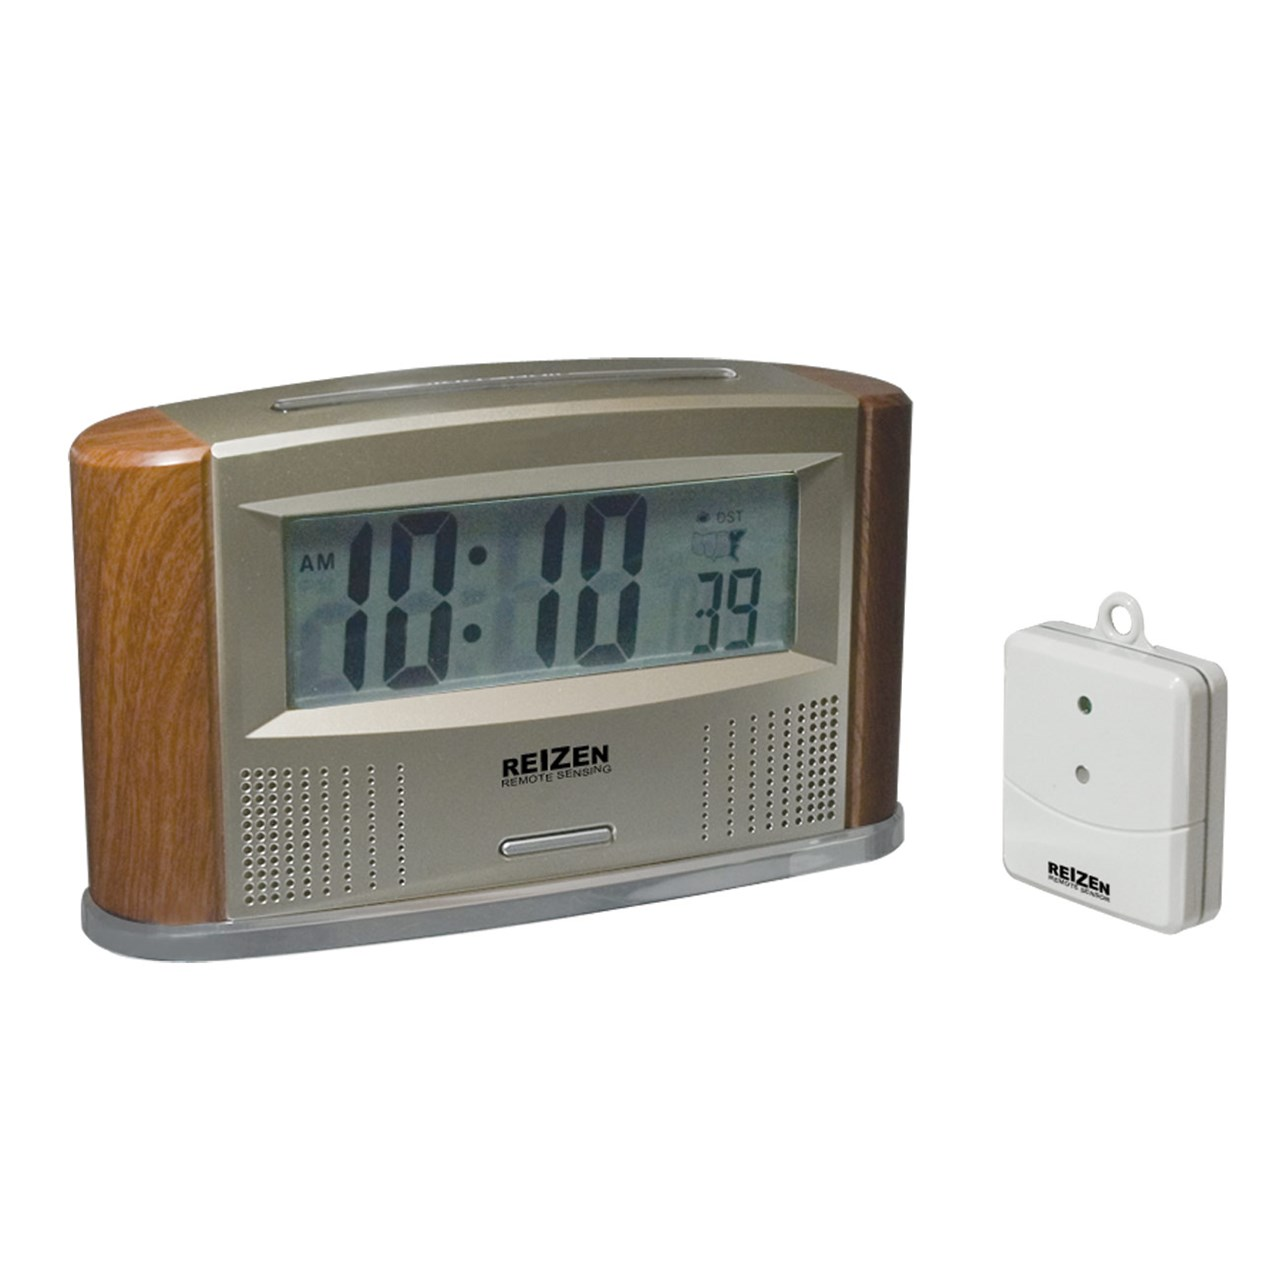 maxiaids reizen atomic talking clock with indoor outdoor thermometer. Black Bedroom Furniture Sets. Home Design Ideas